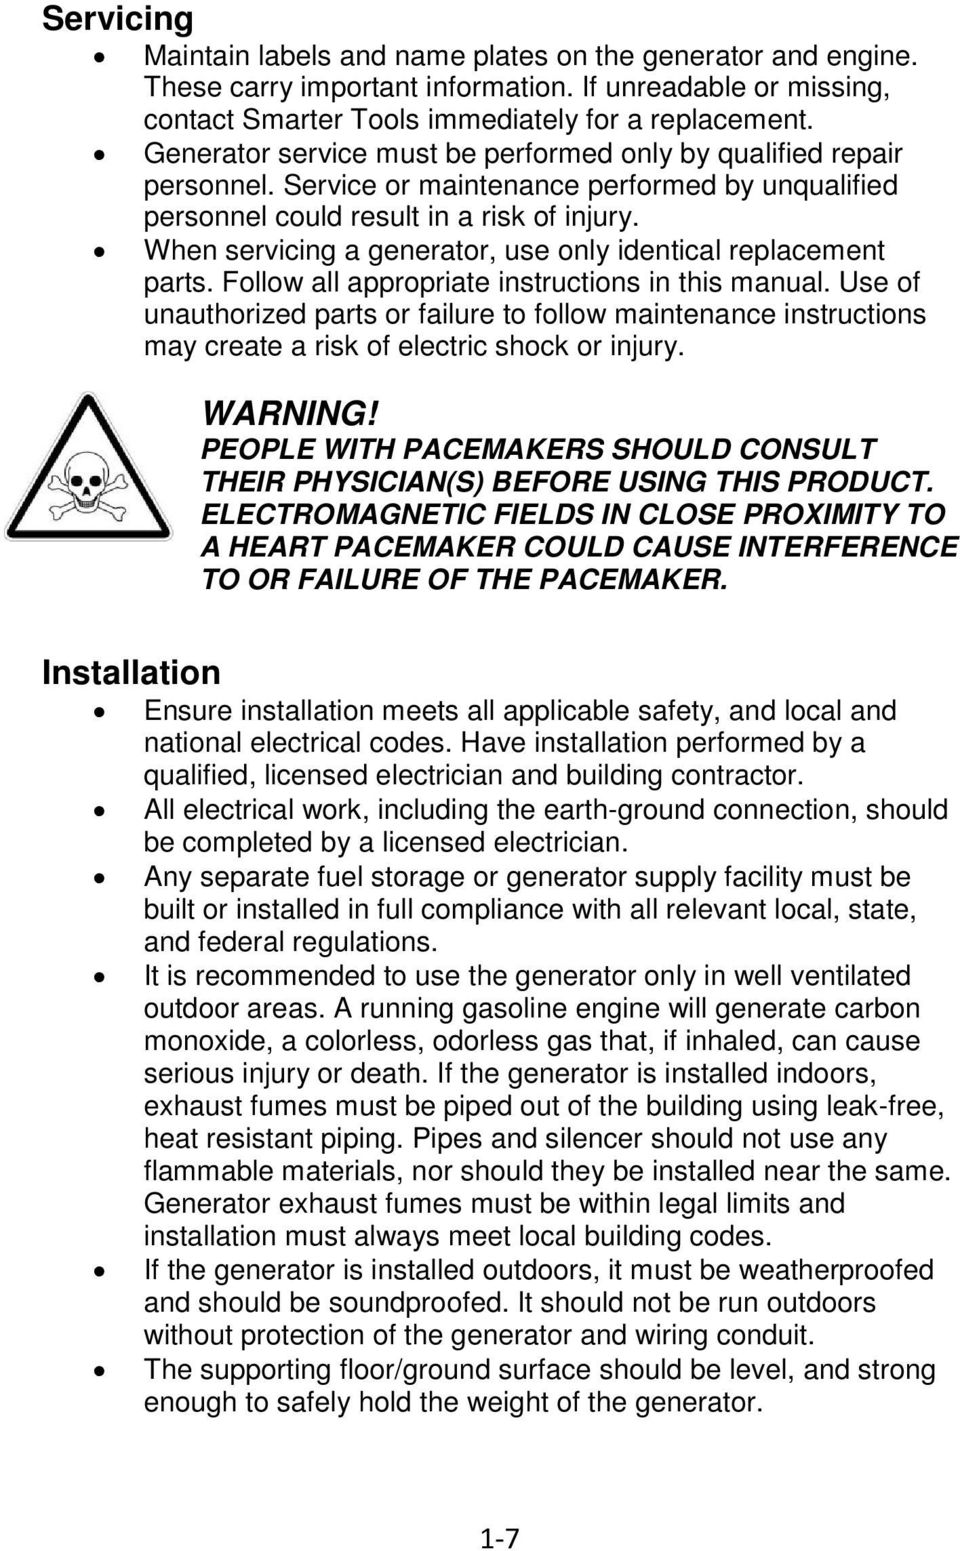 When servicing a generator, use only identical replacement parts. Follow all appropriate instructions in this manual.